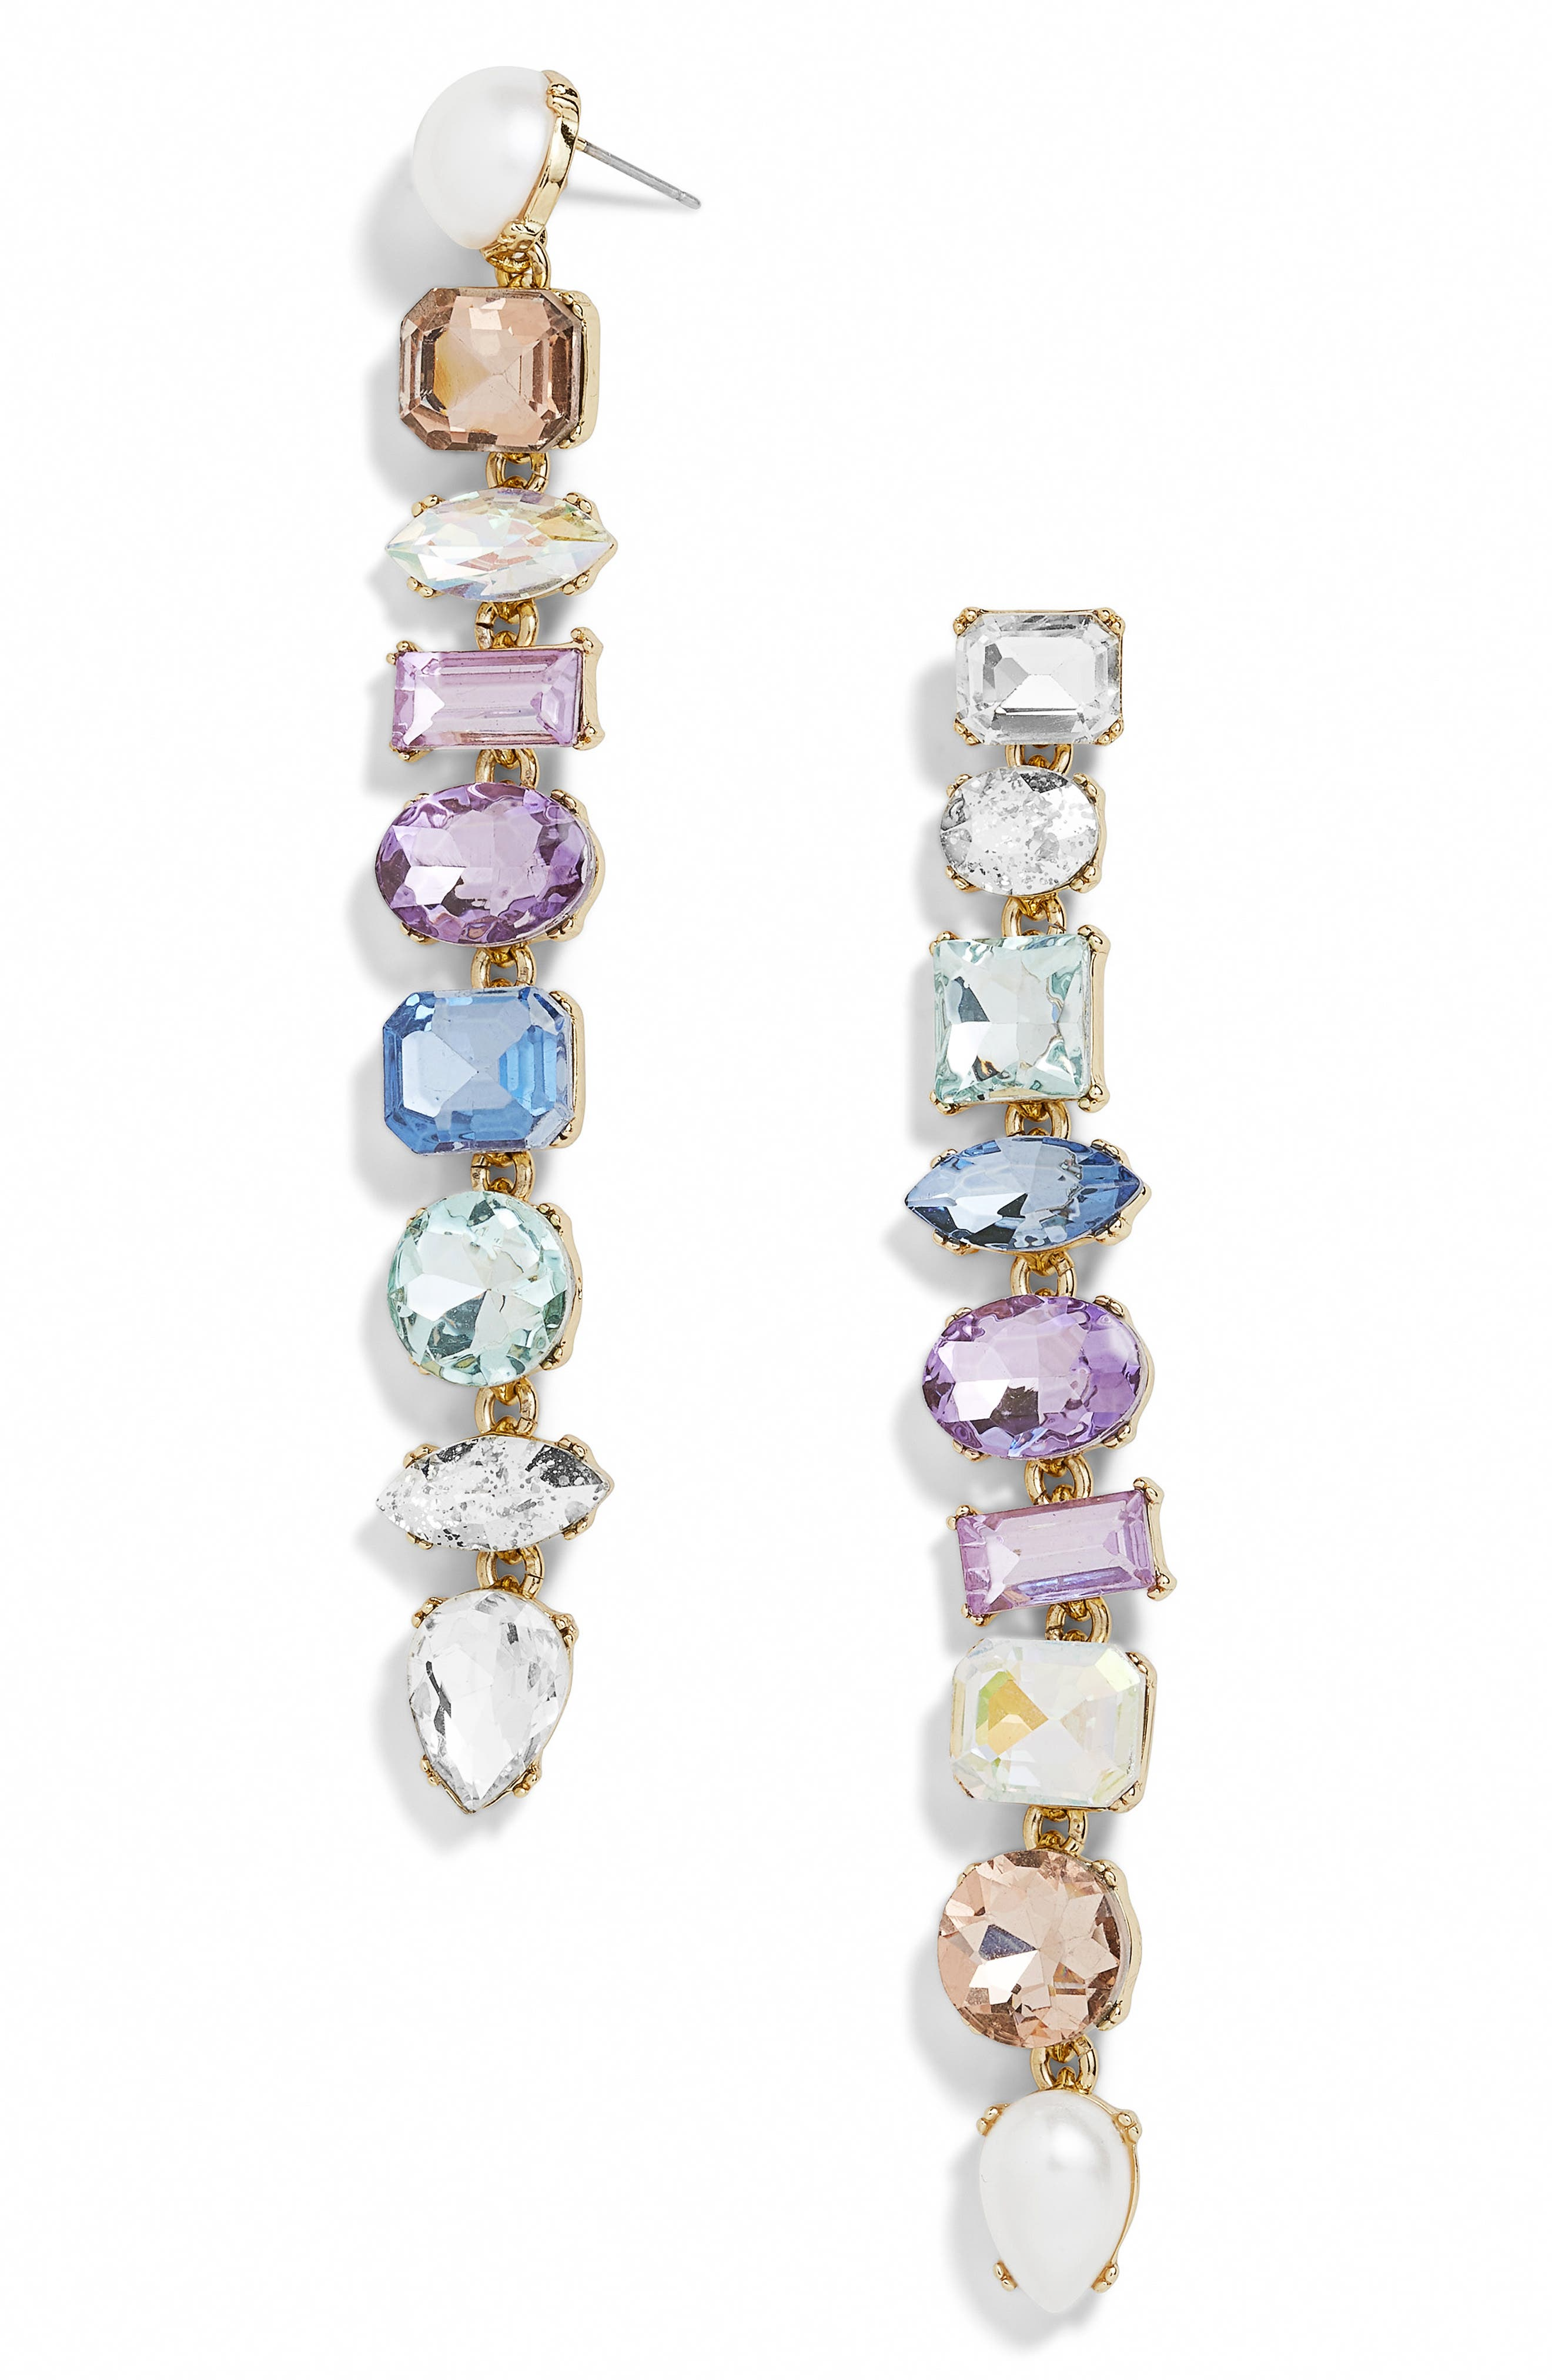 x Micaela Erlanger Girls Night Out Mismatched Drop Earrings,                             Main thumbnail 1, color,                             PASTEL MULTI/ GOLD